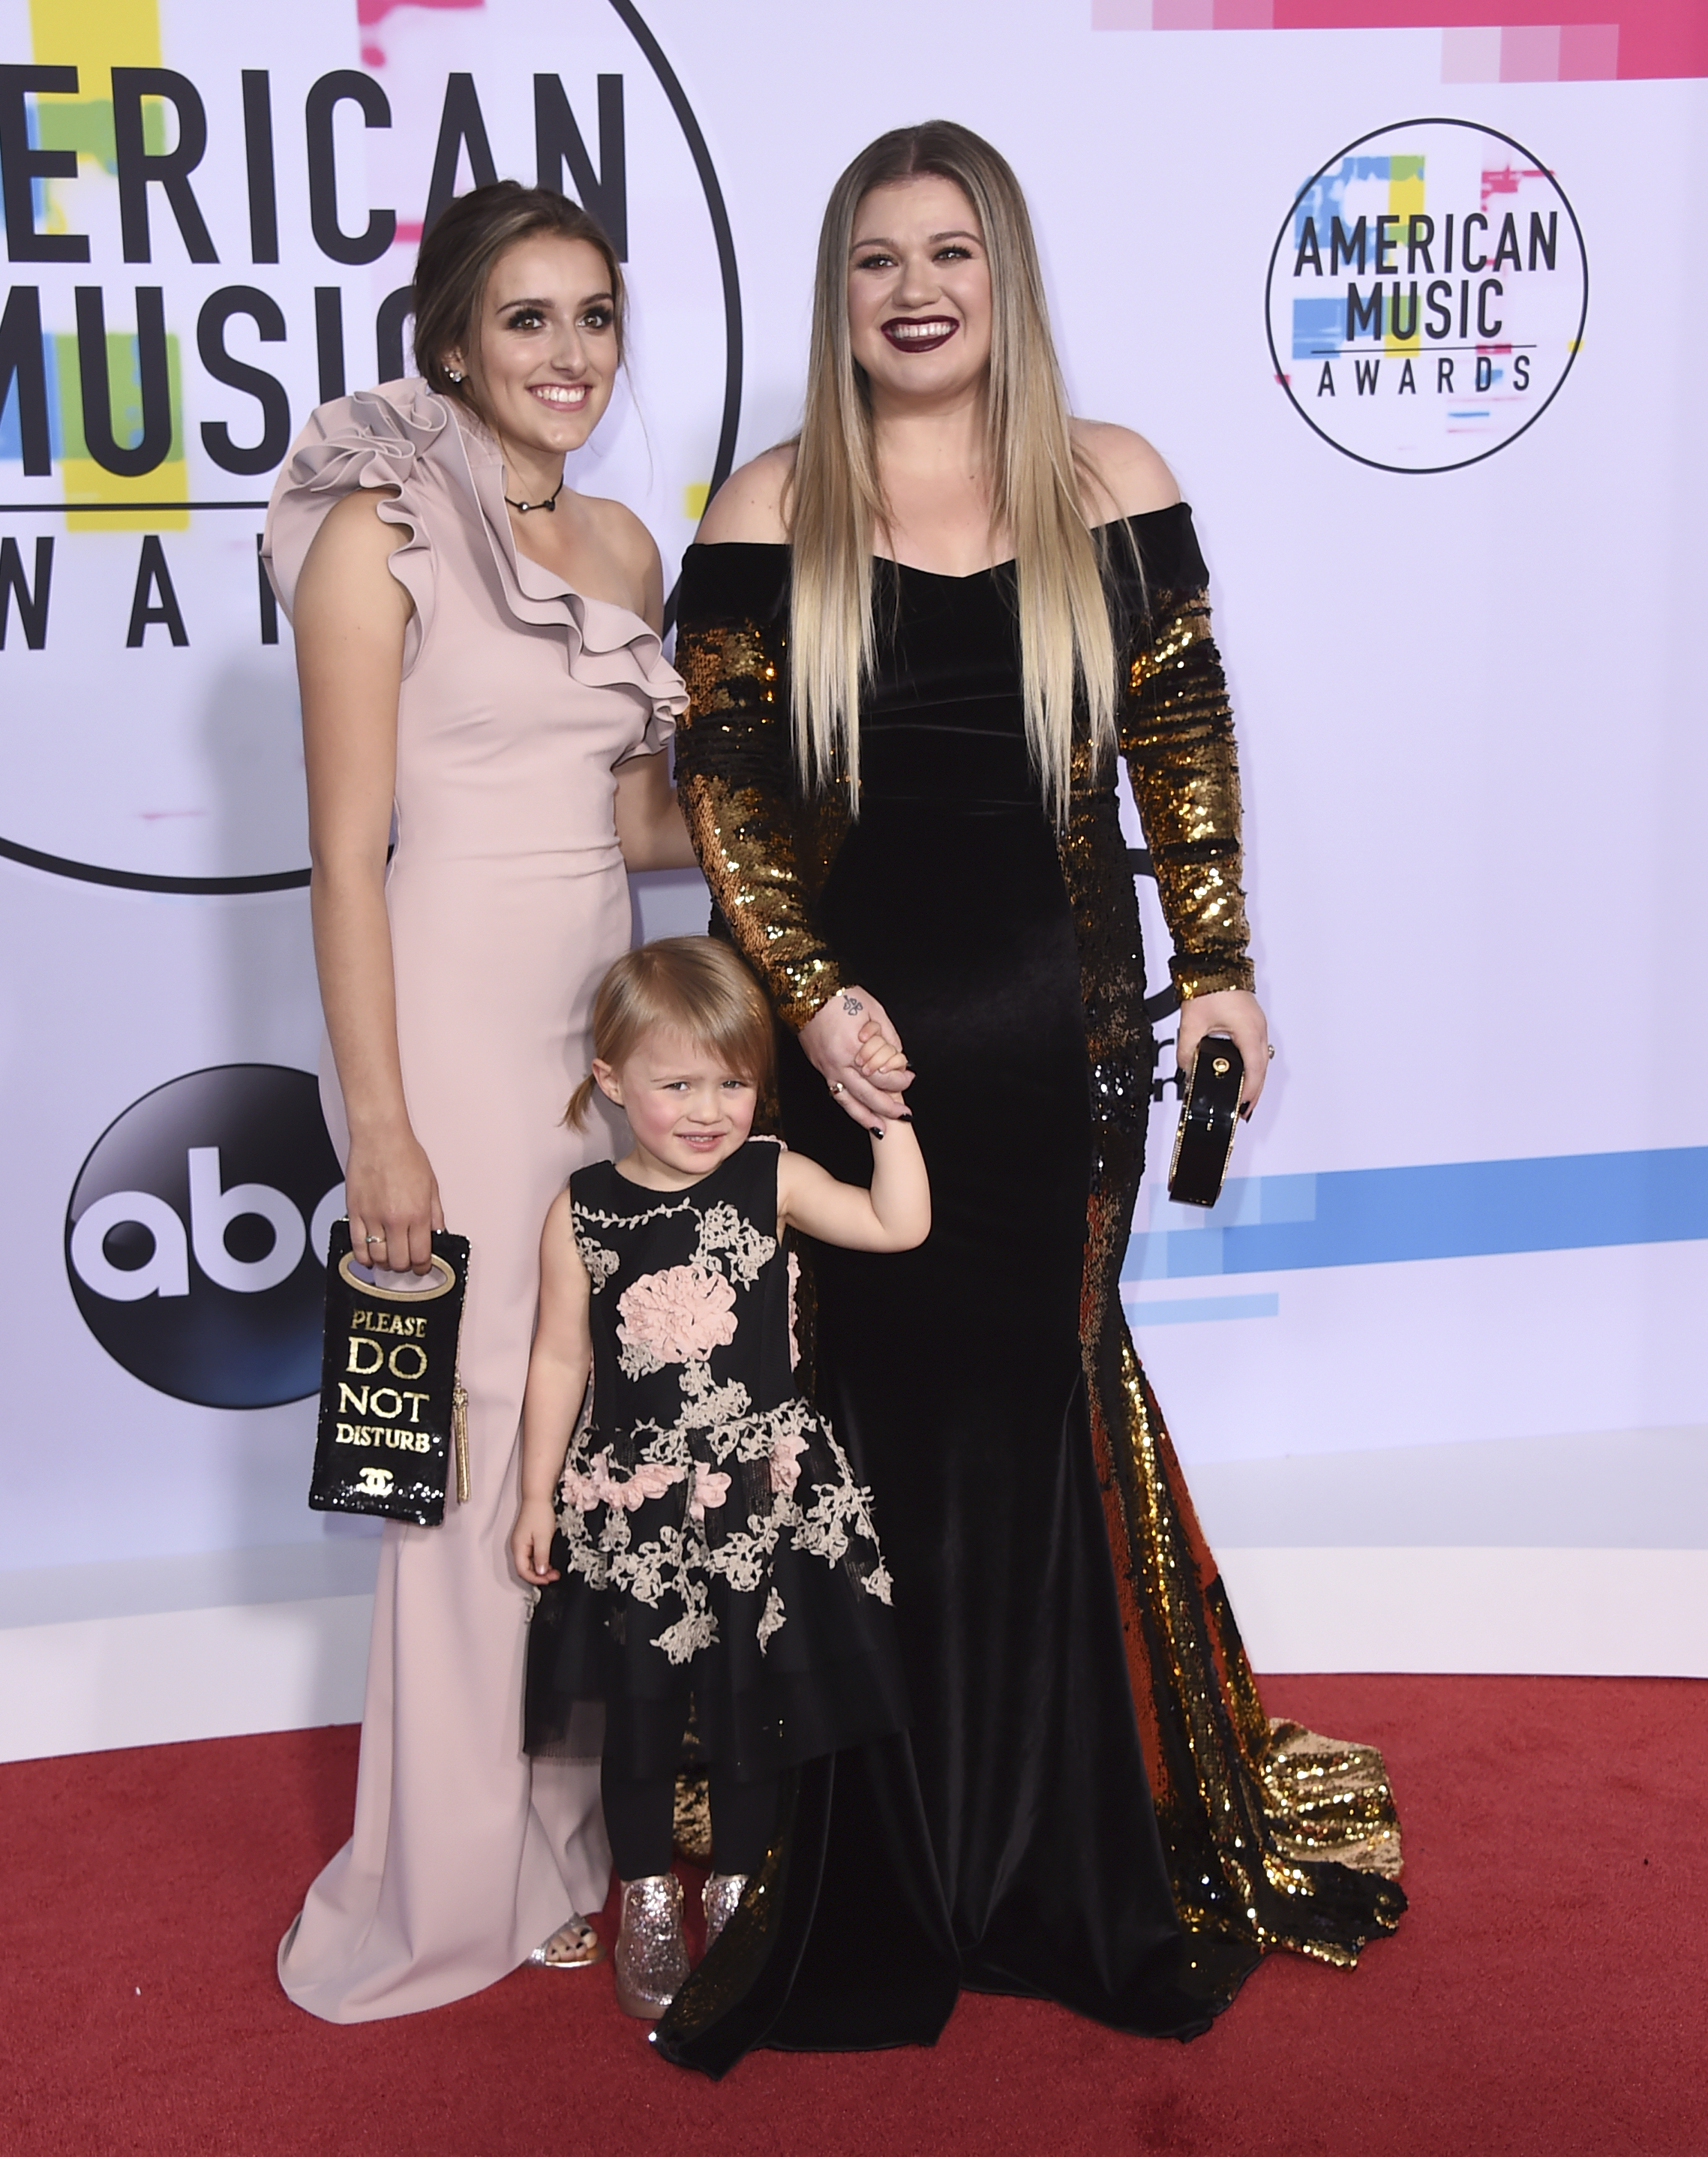 <div class='meta'><div class='origin-logo' data-origin='none'></div><span class='caption-text' data-credit='Jordan Strauss/Invision/AP'>Kelly Clarkson, from right, Savannah Blackstock, and River Rose Blackstock arrive at the American Music Awards at the Microsoft Theater on Sunday, Nov. 19, 2017, in Los Angeles.</span></div>